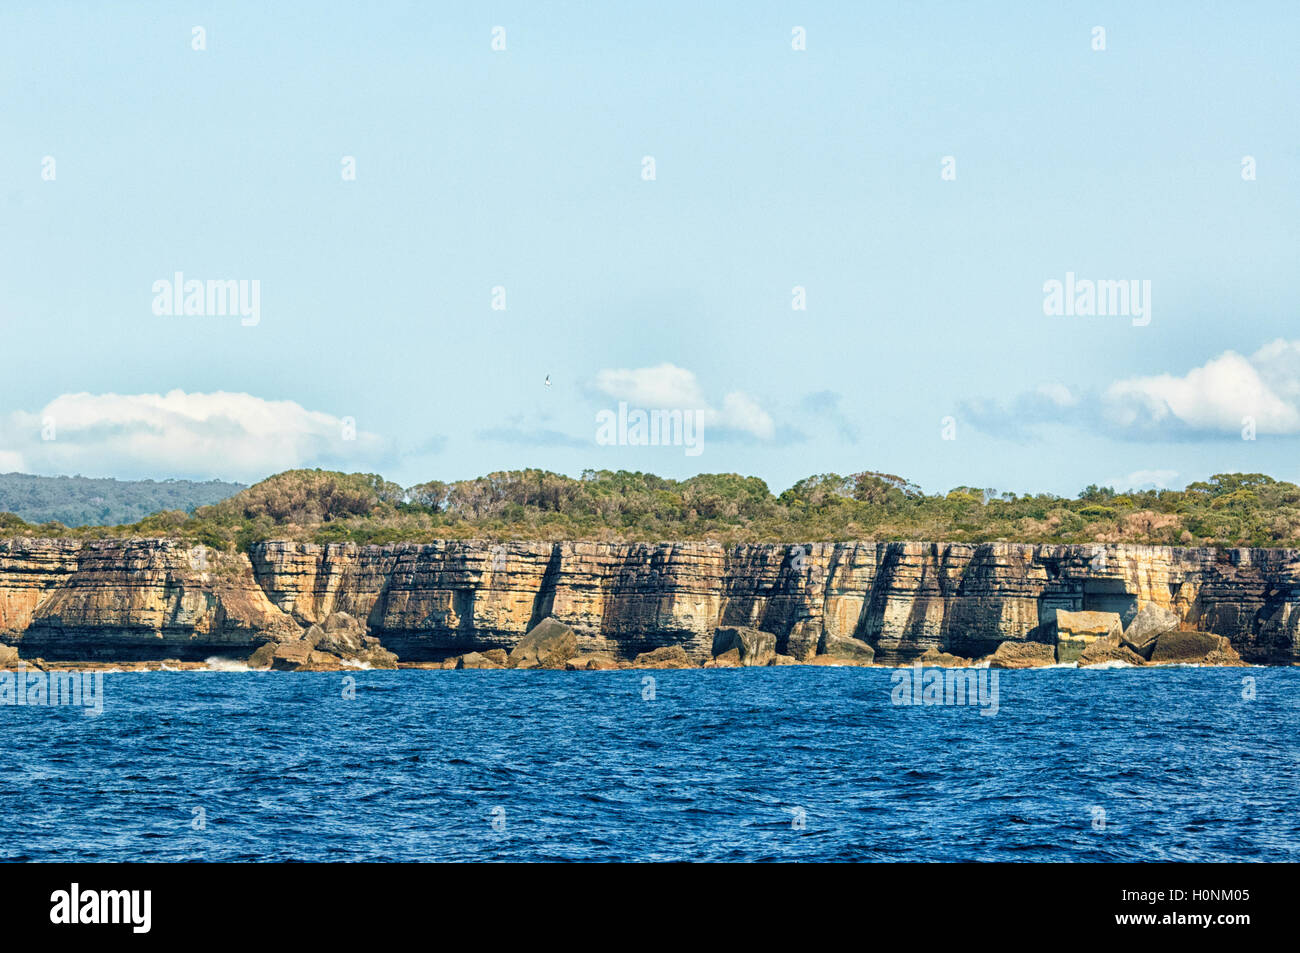 Scenic view of cliffs at Jervis Bay, New South Wales, NSW, Australia - Stock Image